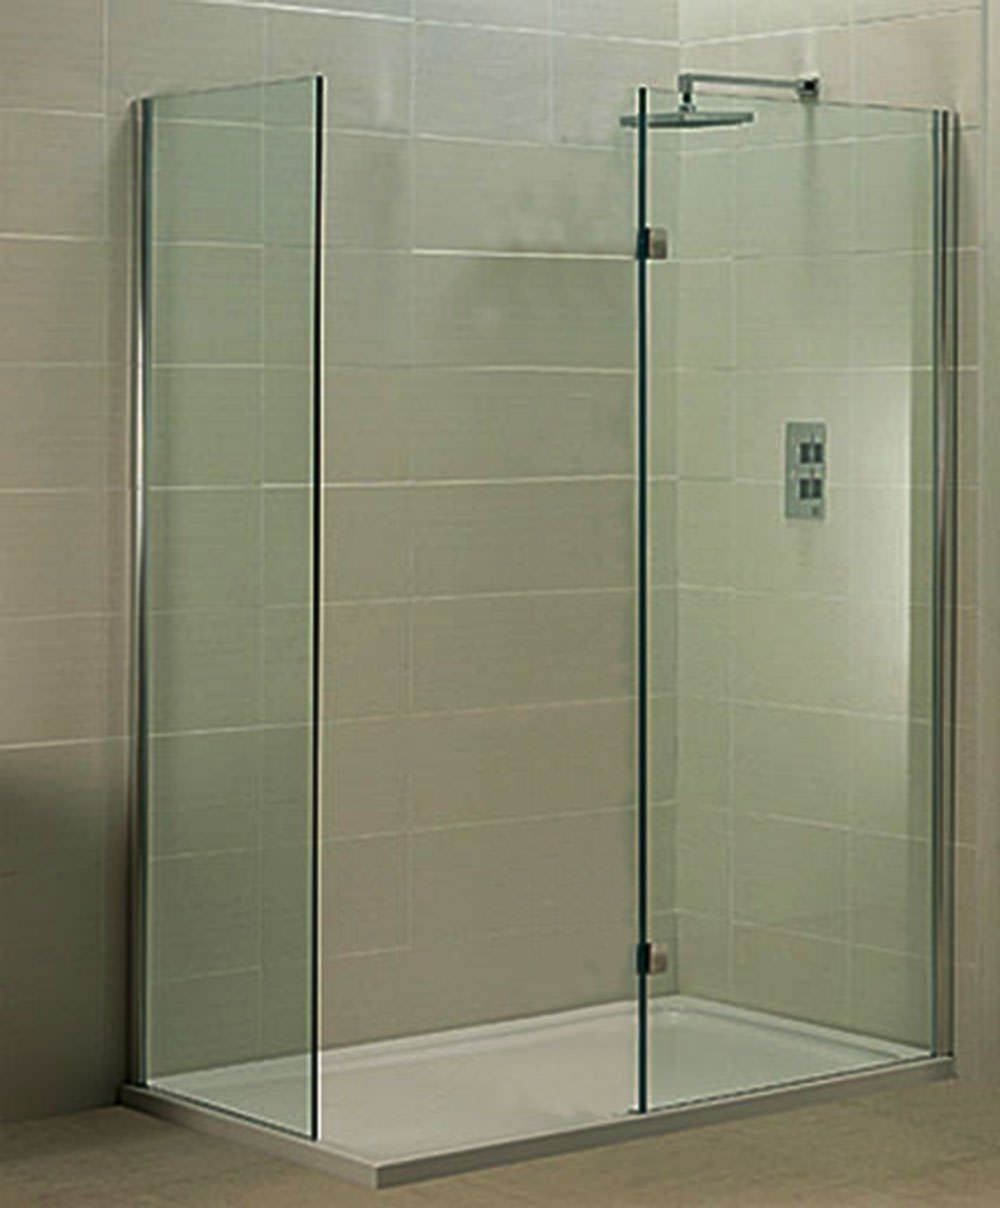 Pictures of walk in shower enclosures joy studio design Walk in shower kits